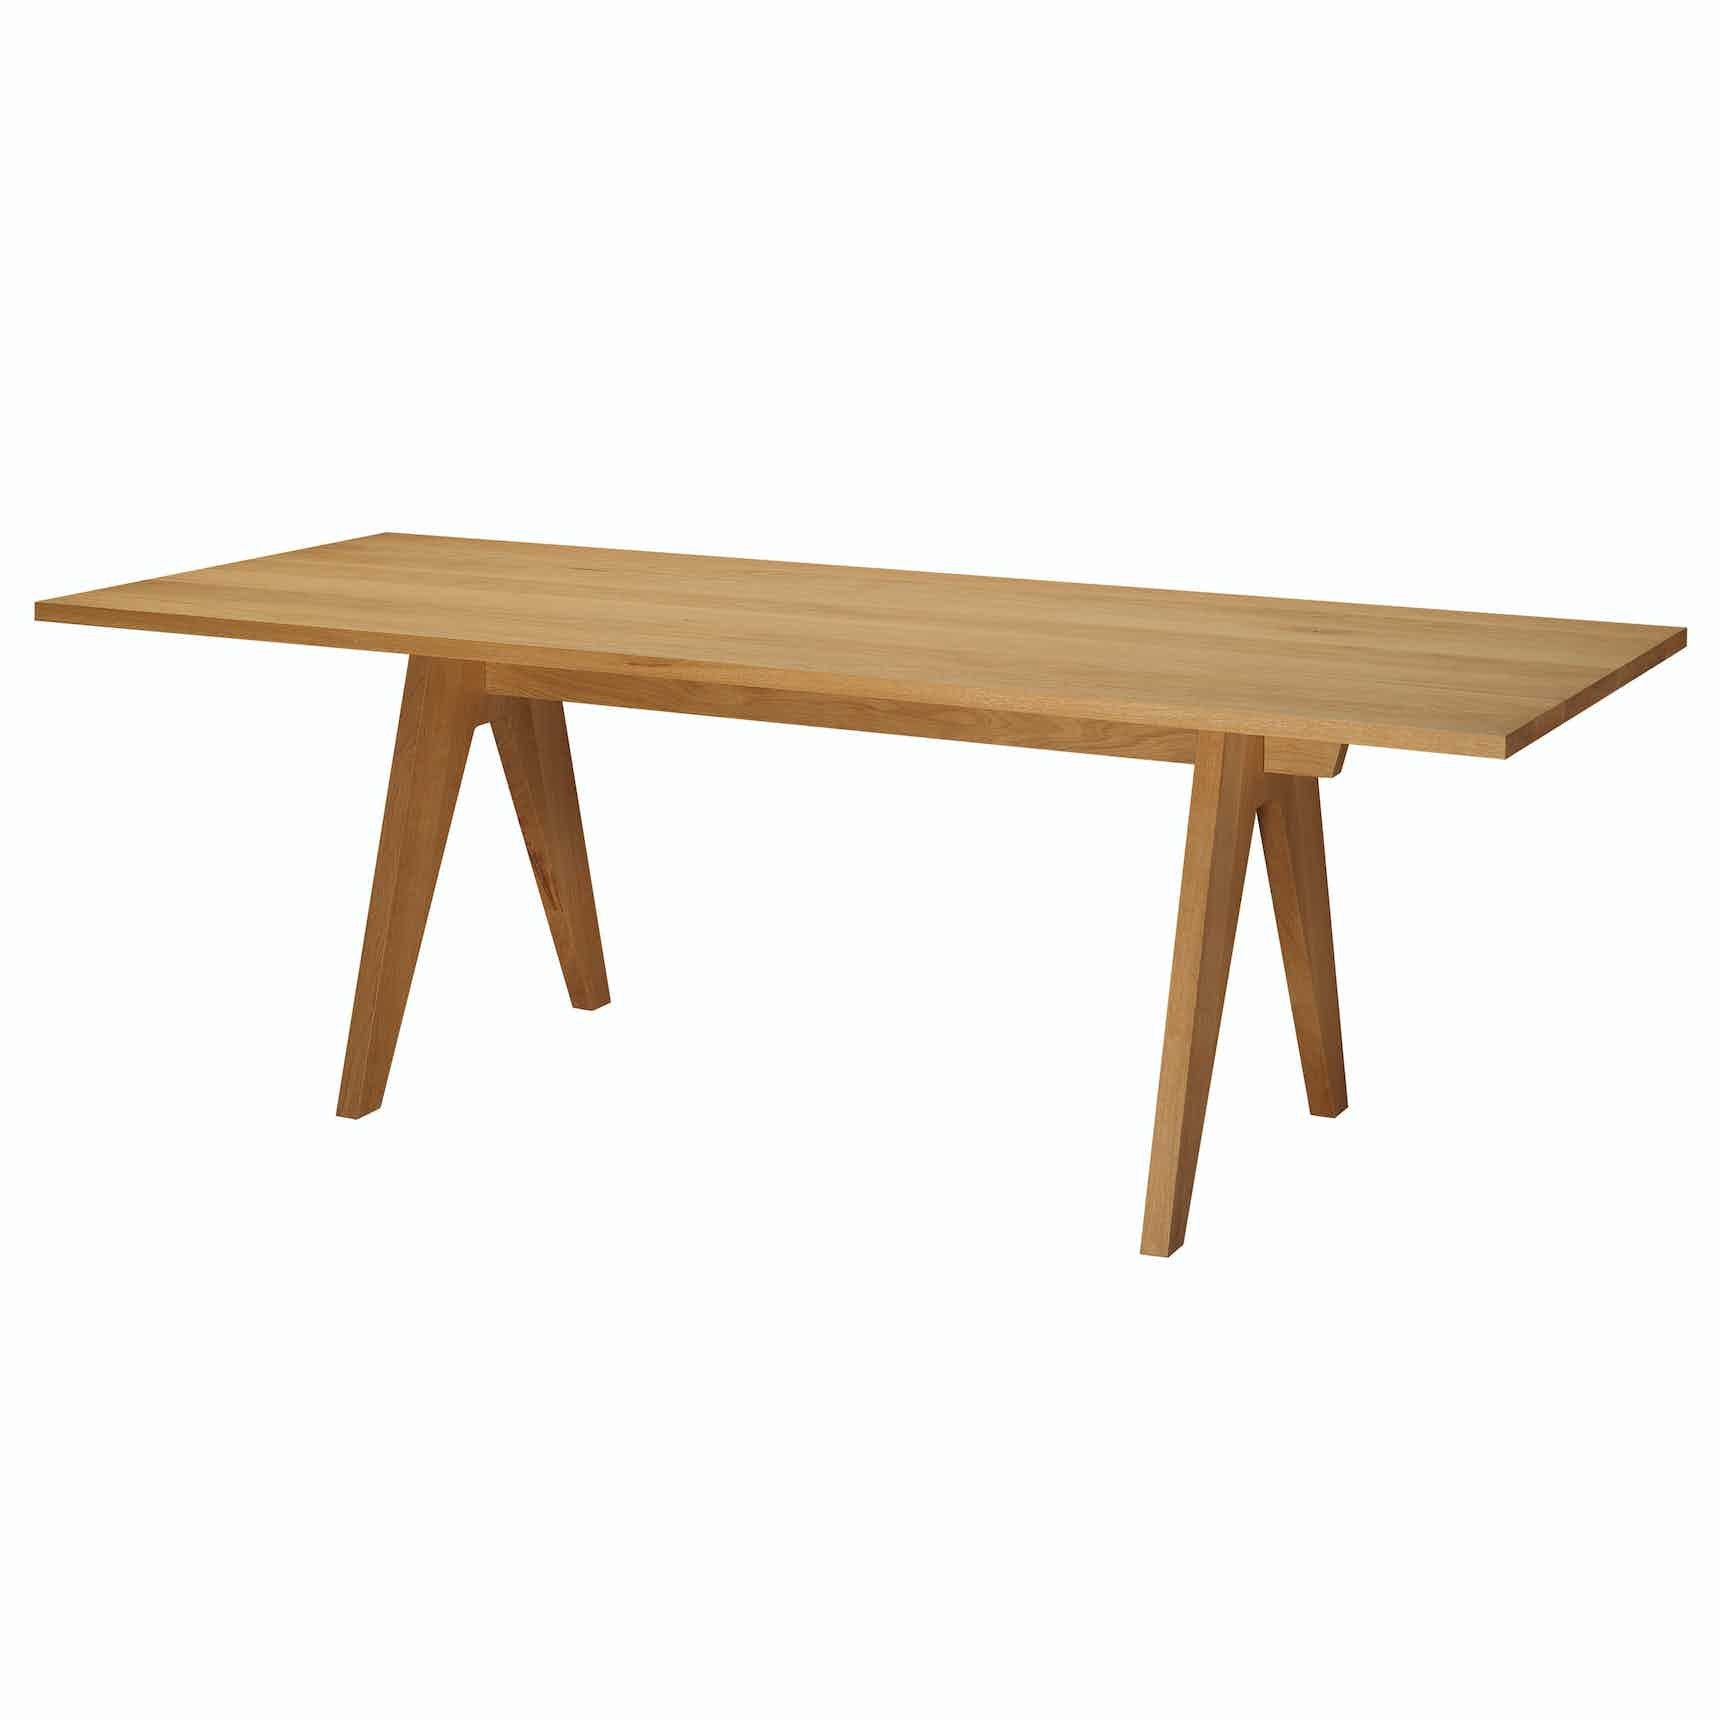 E15-furniture-alden-table-angle-thumb-haute-living